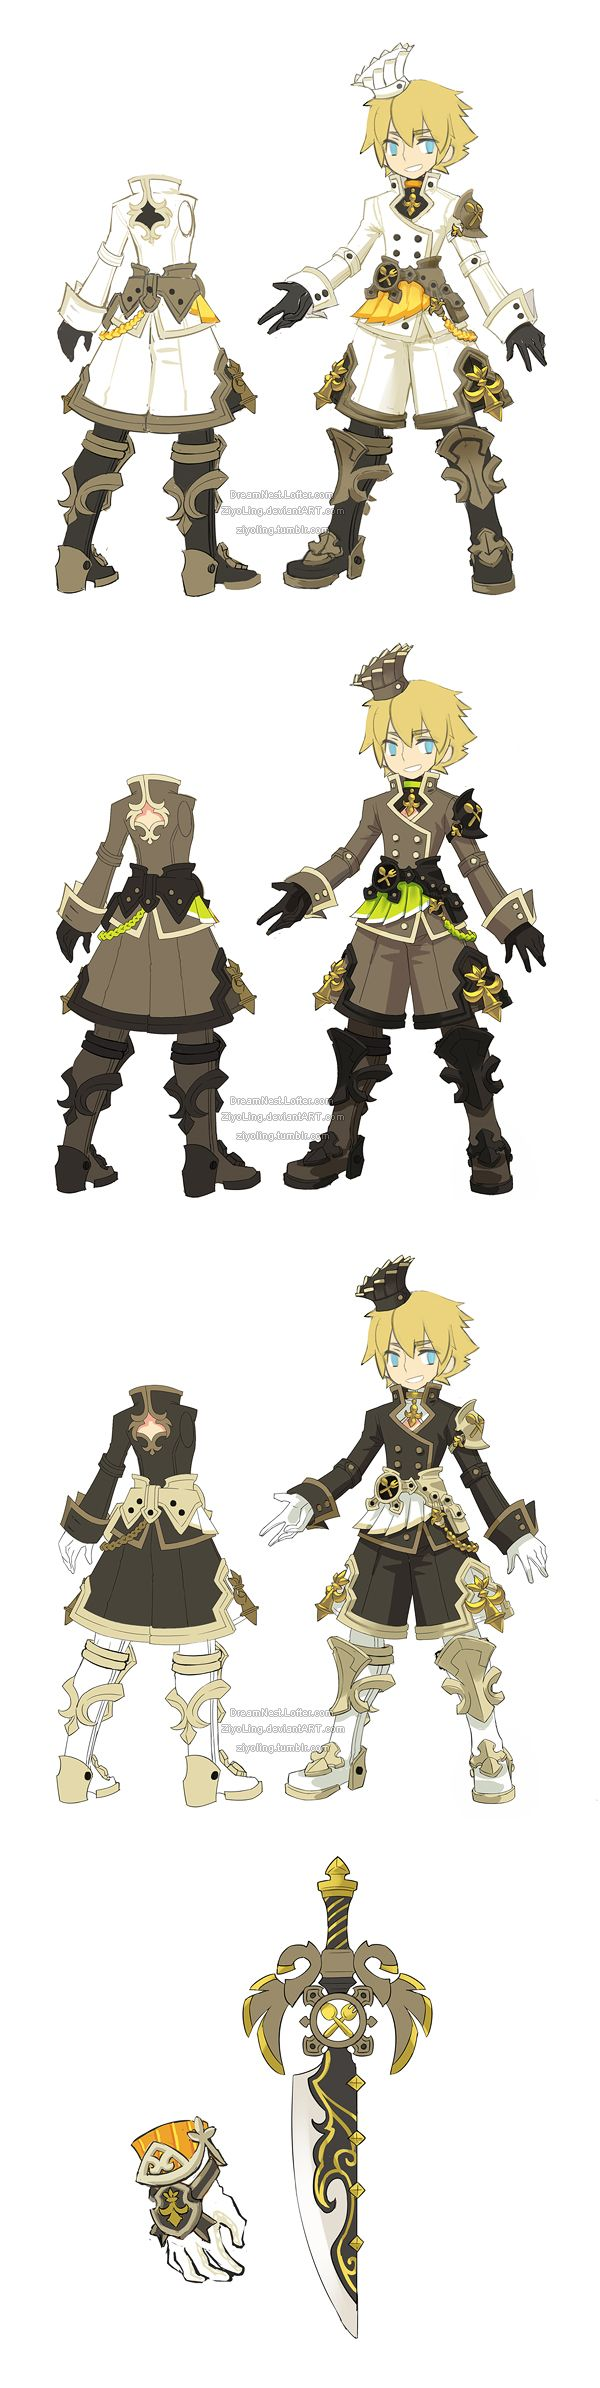 Google themes dragon nest - Costume Weapon Designs Of A Restaurant Theme For Dragon Nest Warrior In The Other Cl Dragonnest_restaurant Costume Warrior